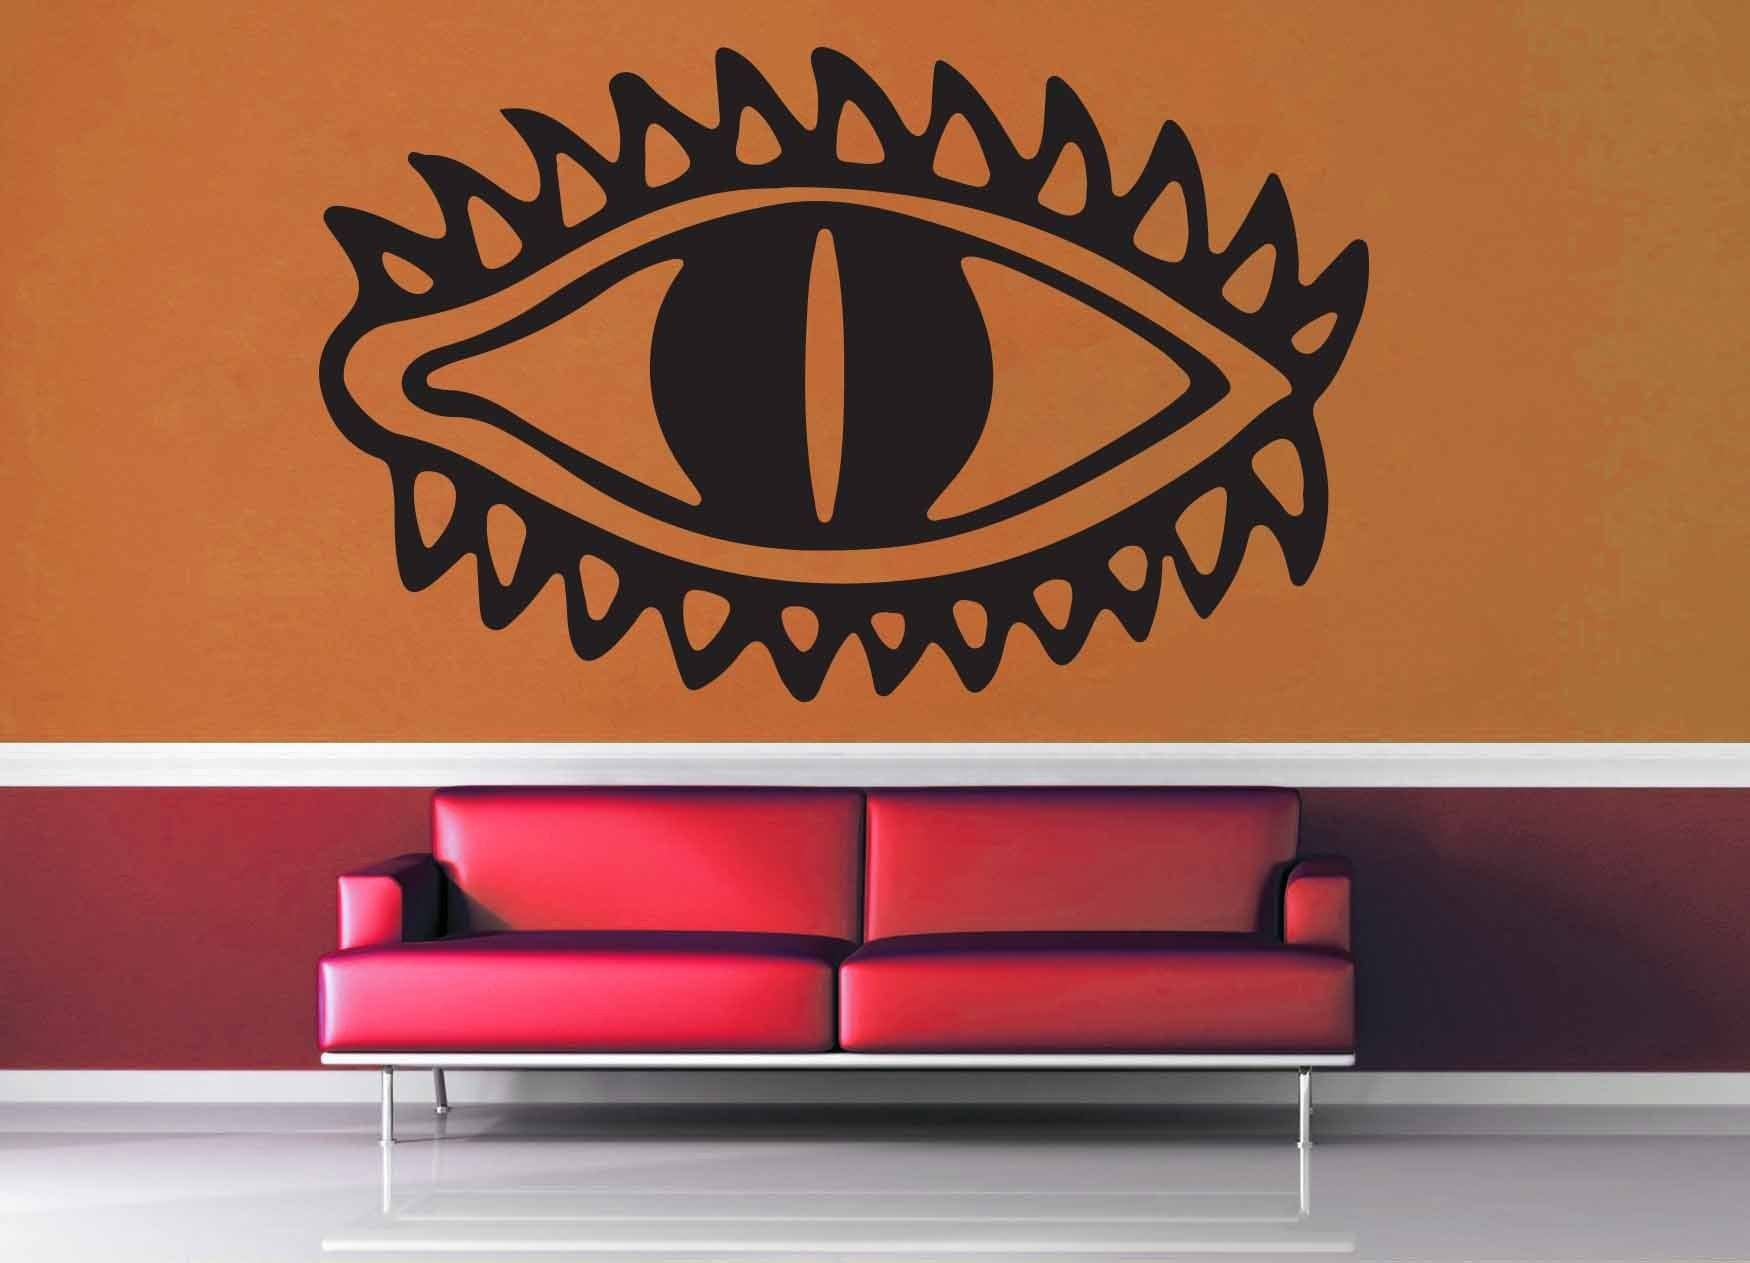 Eye of Sauron - Tolkien - Wall Decal